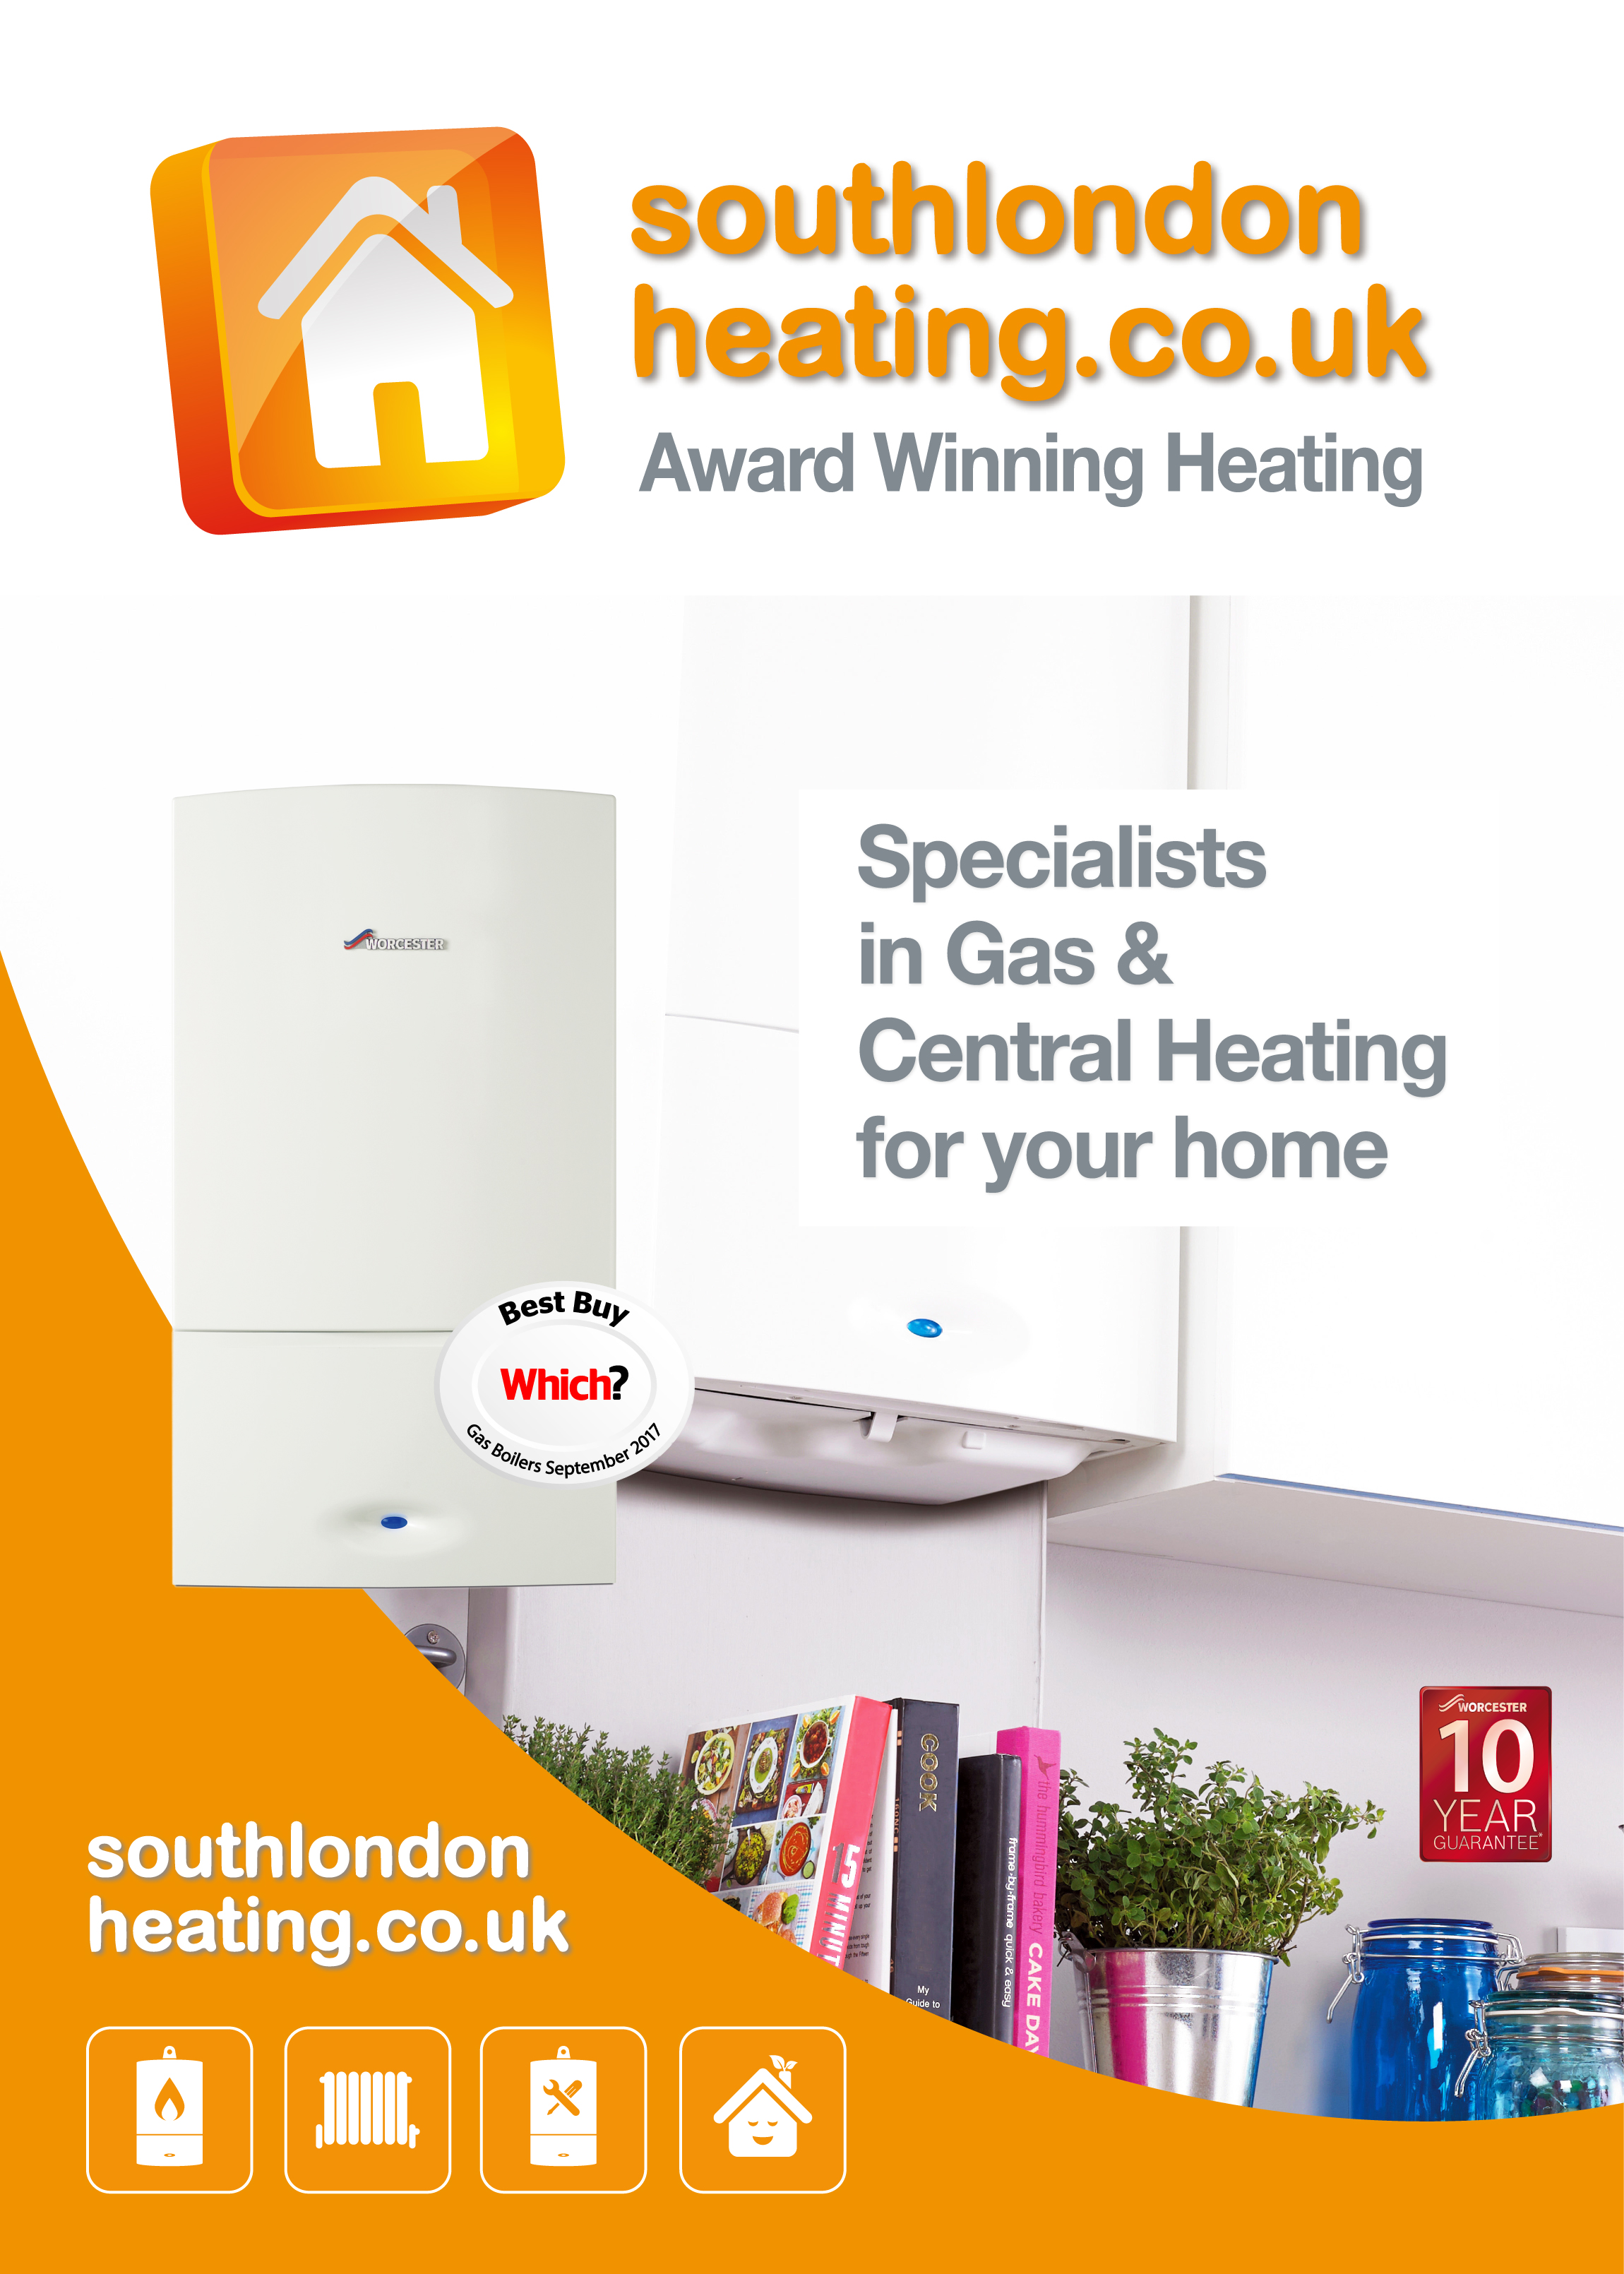 SOUTH LONDON HEATING - SPECIALISTS IN GAS CENTRAL HEATING AND BOILER INSTALLATIONS